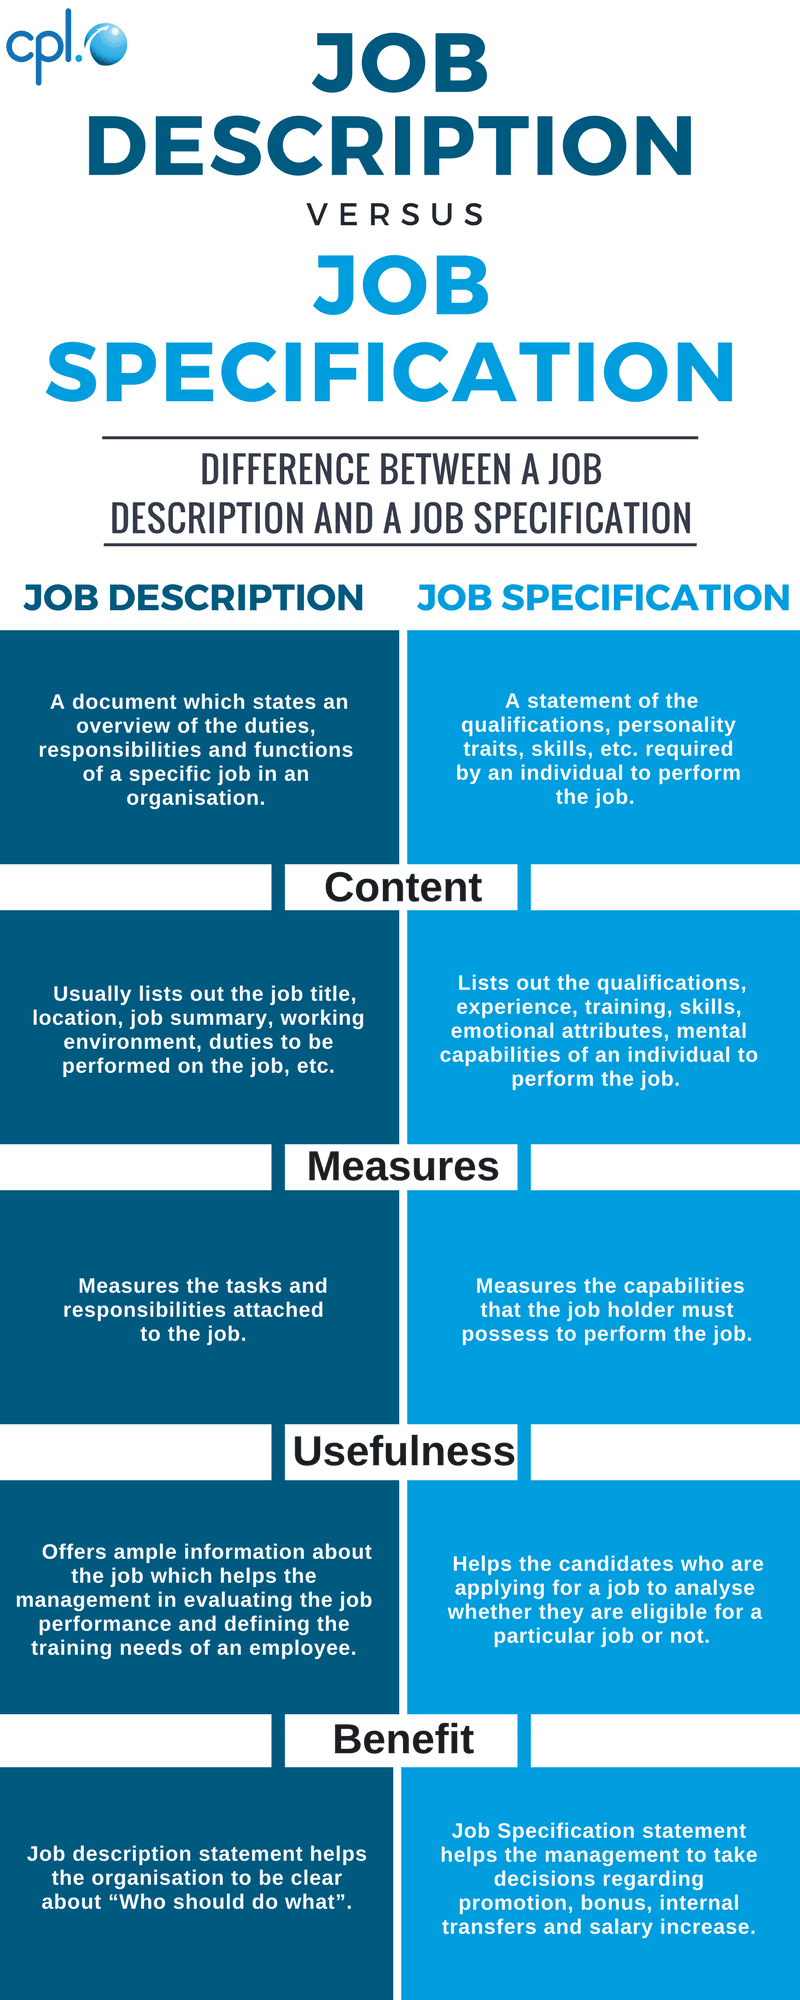 4 differences between a job description and a job